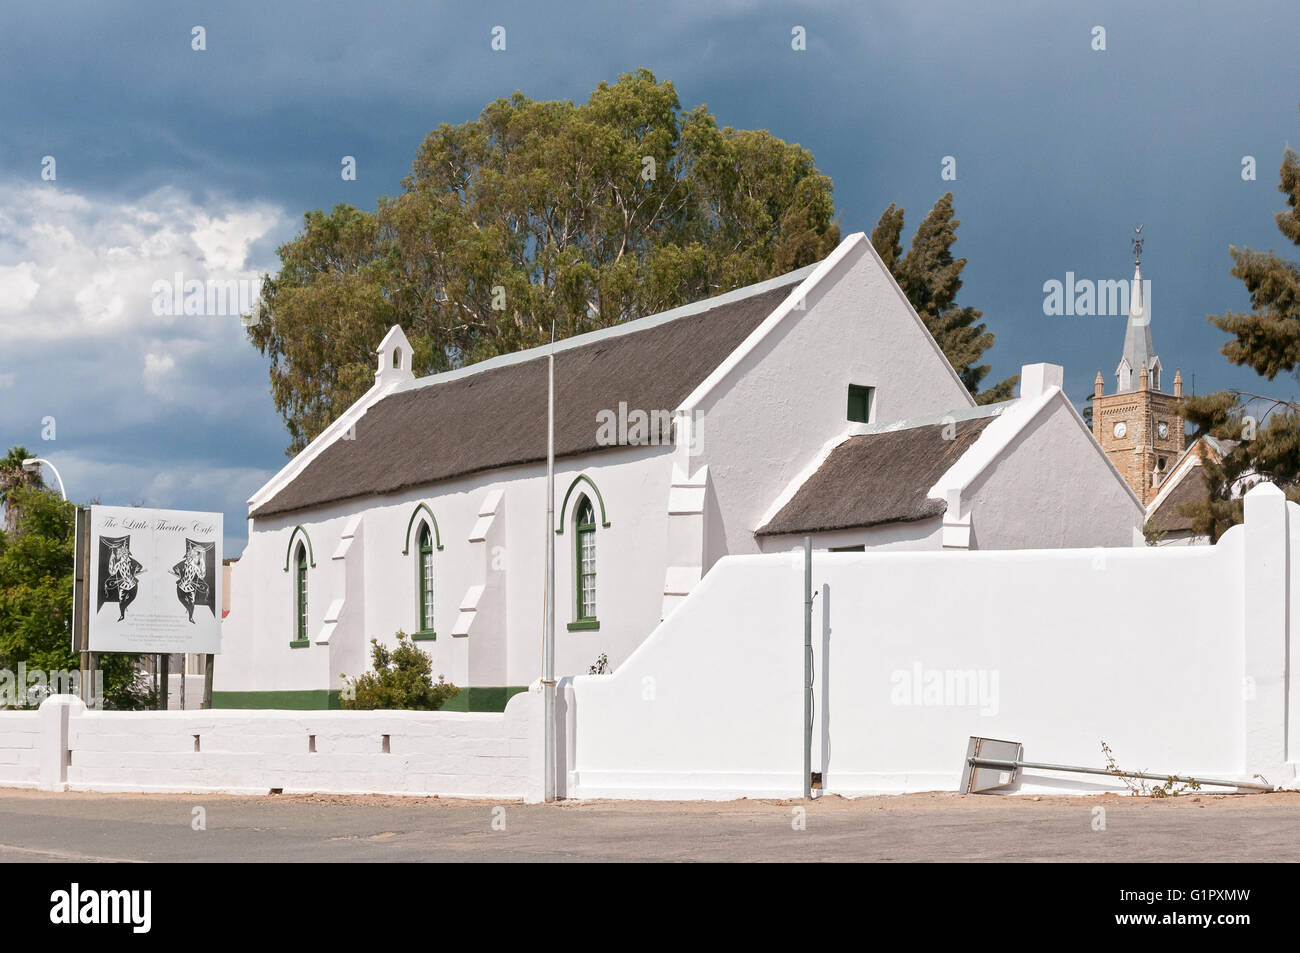 UNIONDALE, SOUTH AFRICA - MARCH 5, 2016: The Pinkster Protestant Church in Uniondale - Stock Image